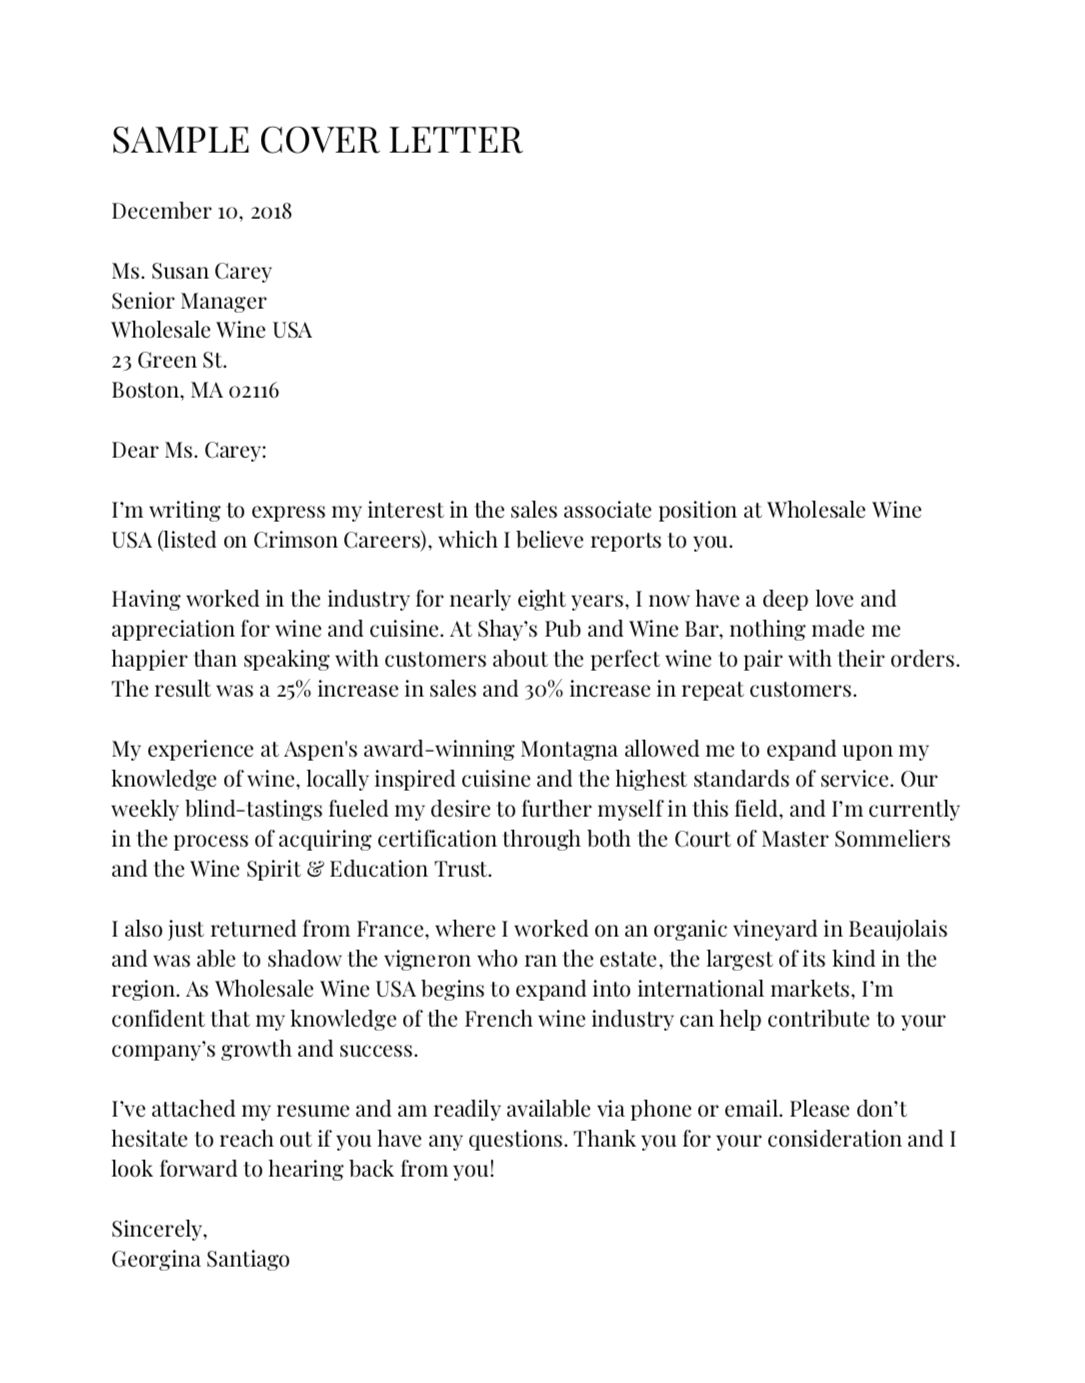 Resume Cover Letter Examples Of Here S An Example Of the Perfect Cover Letter According to Harvard Career Experts